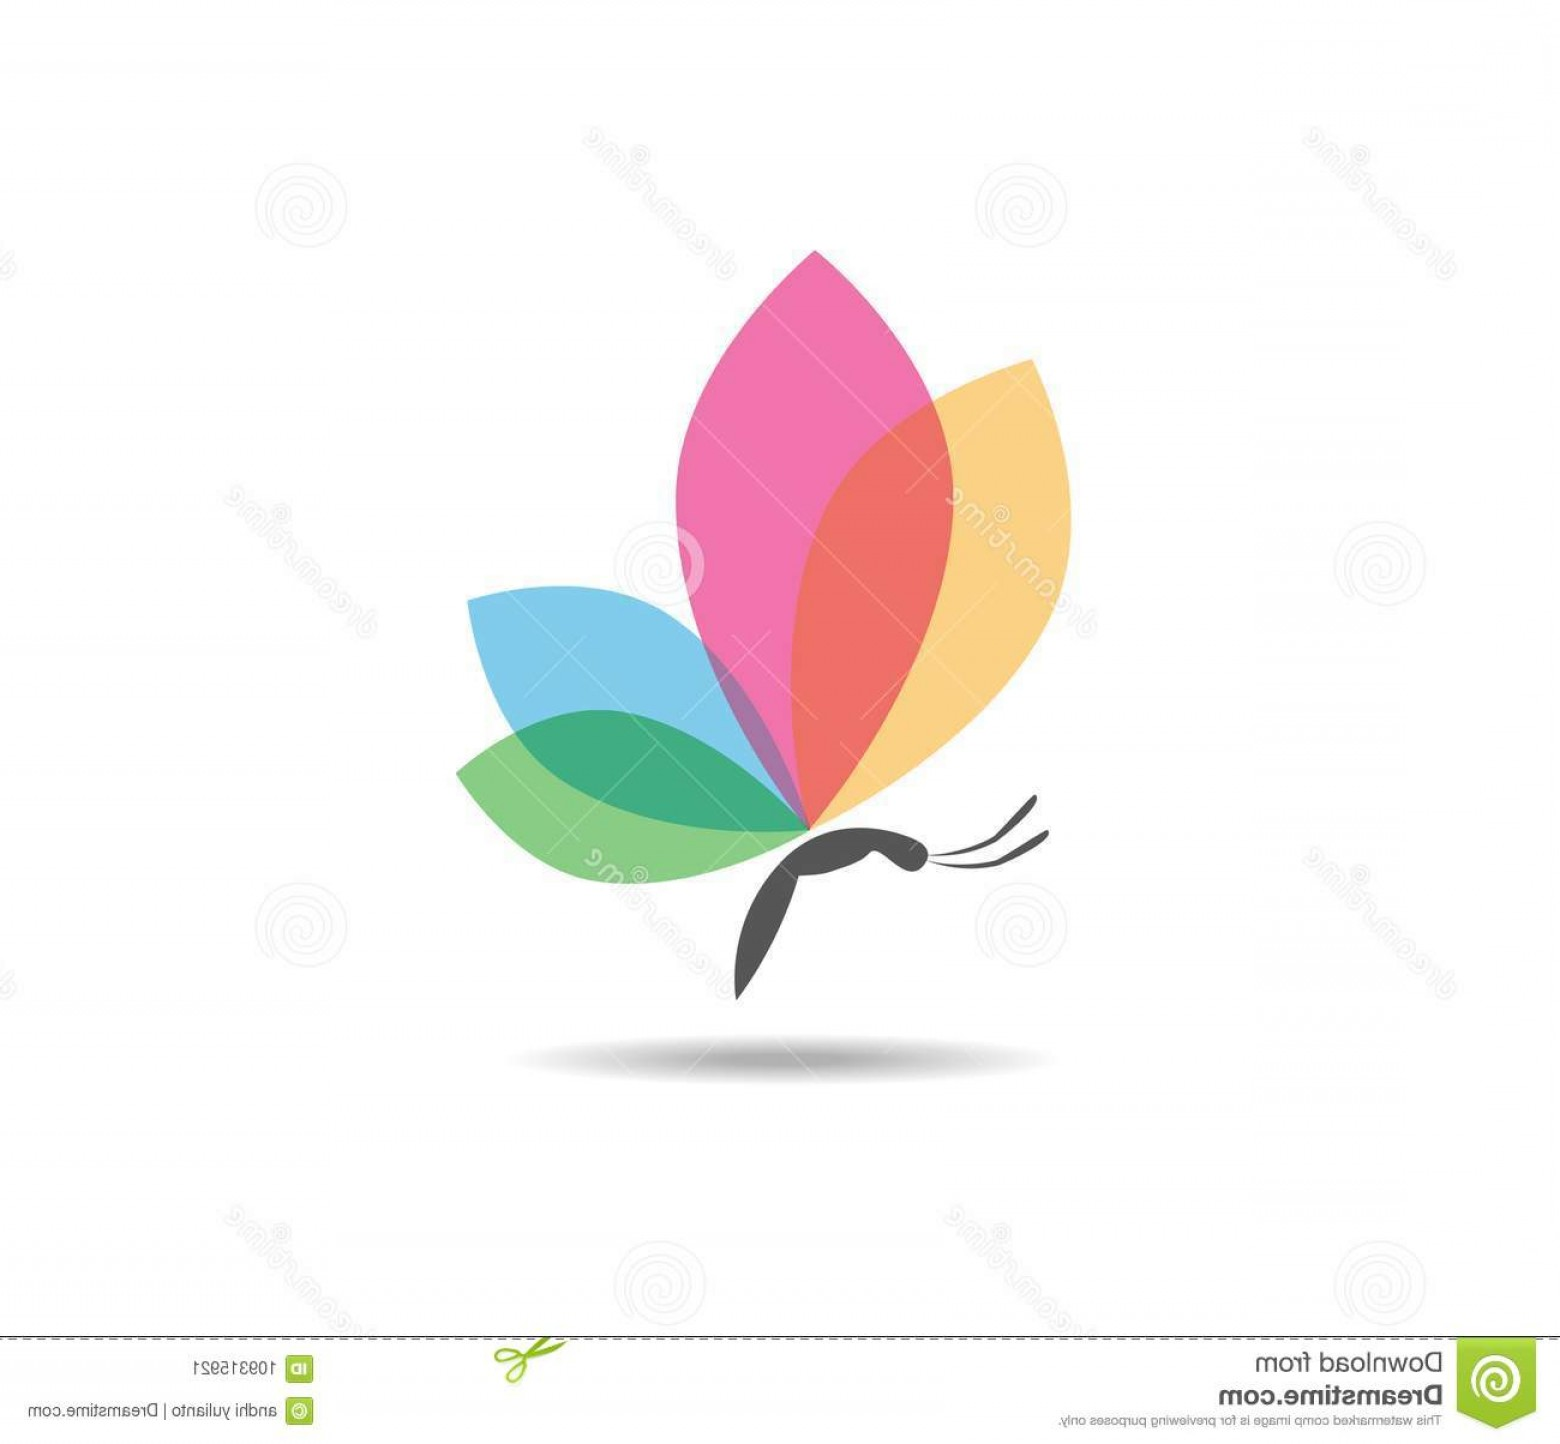 Butterfly Vector Logo: Beautiful Graceful Majestic Colorful Butterfly Vector Logo Design Beautiful Graceful Majestic Colorful Butterfly Vector Logo Image